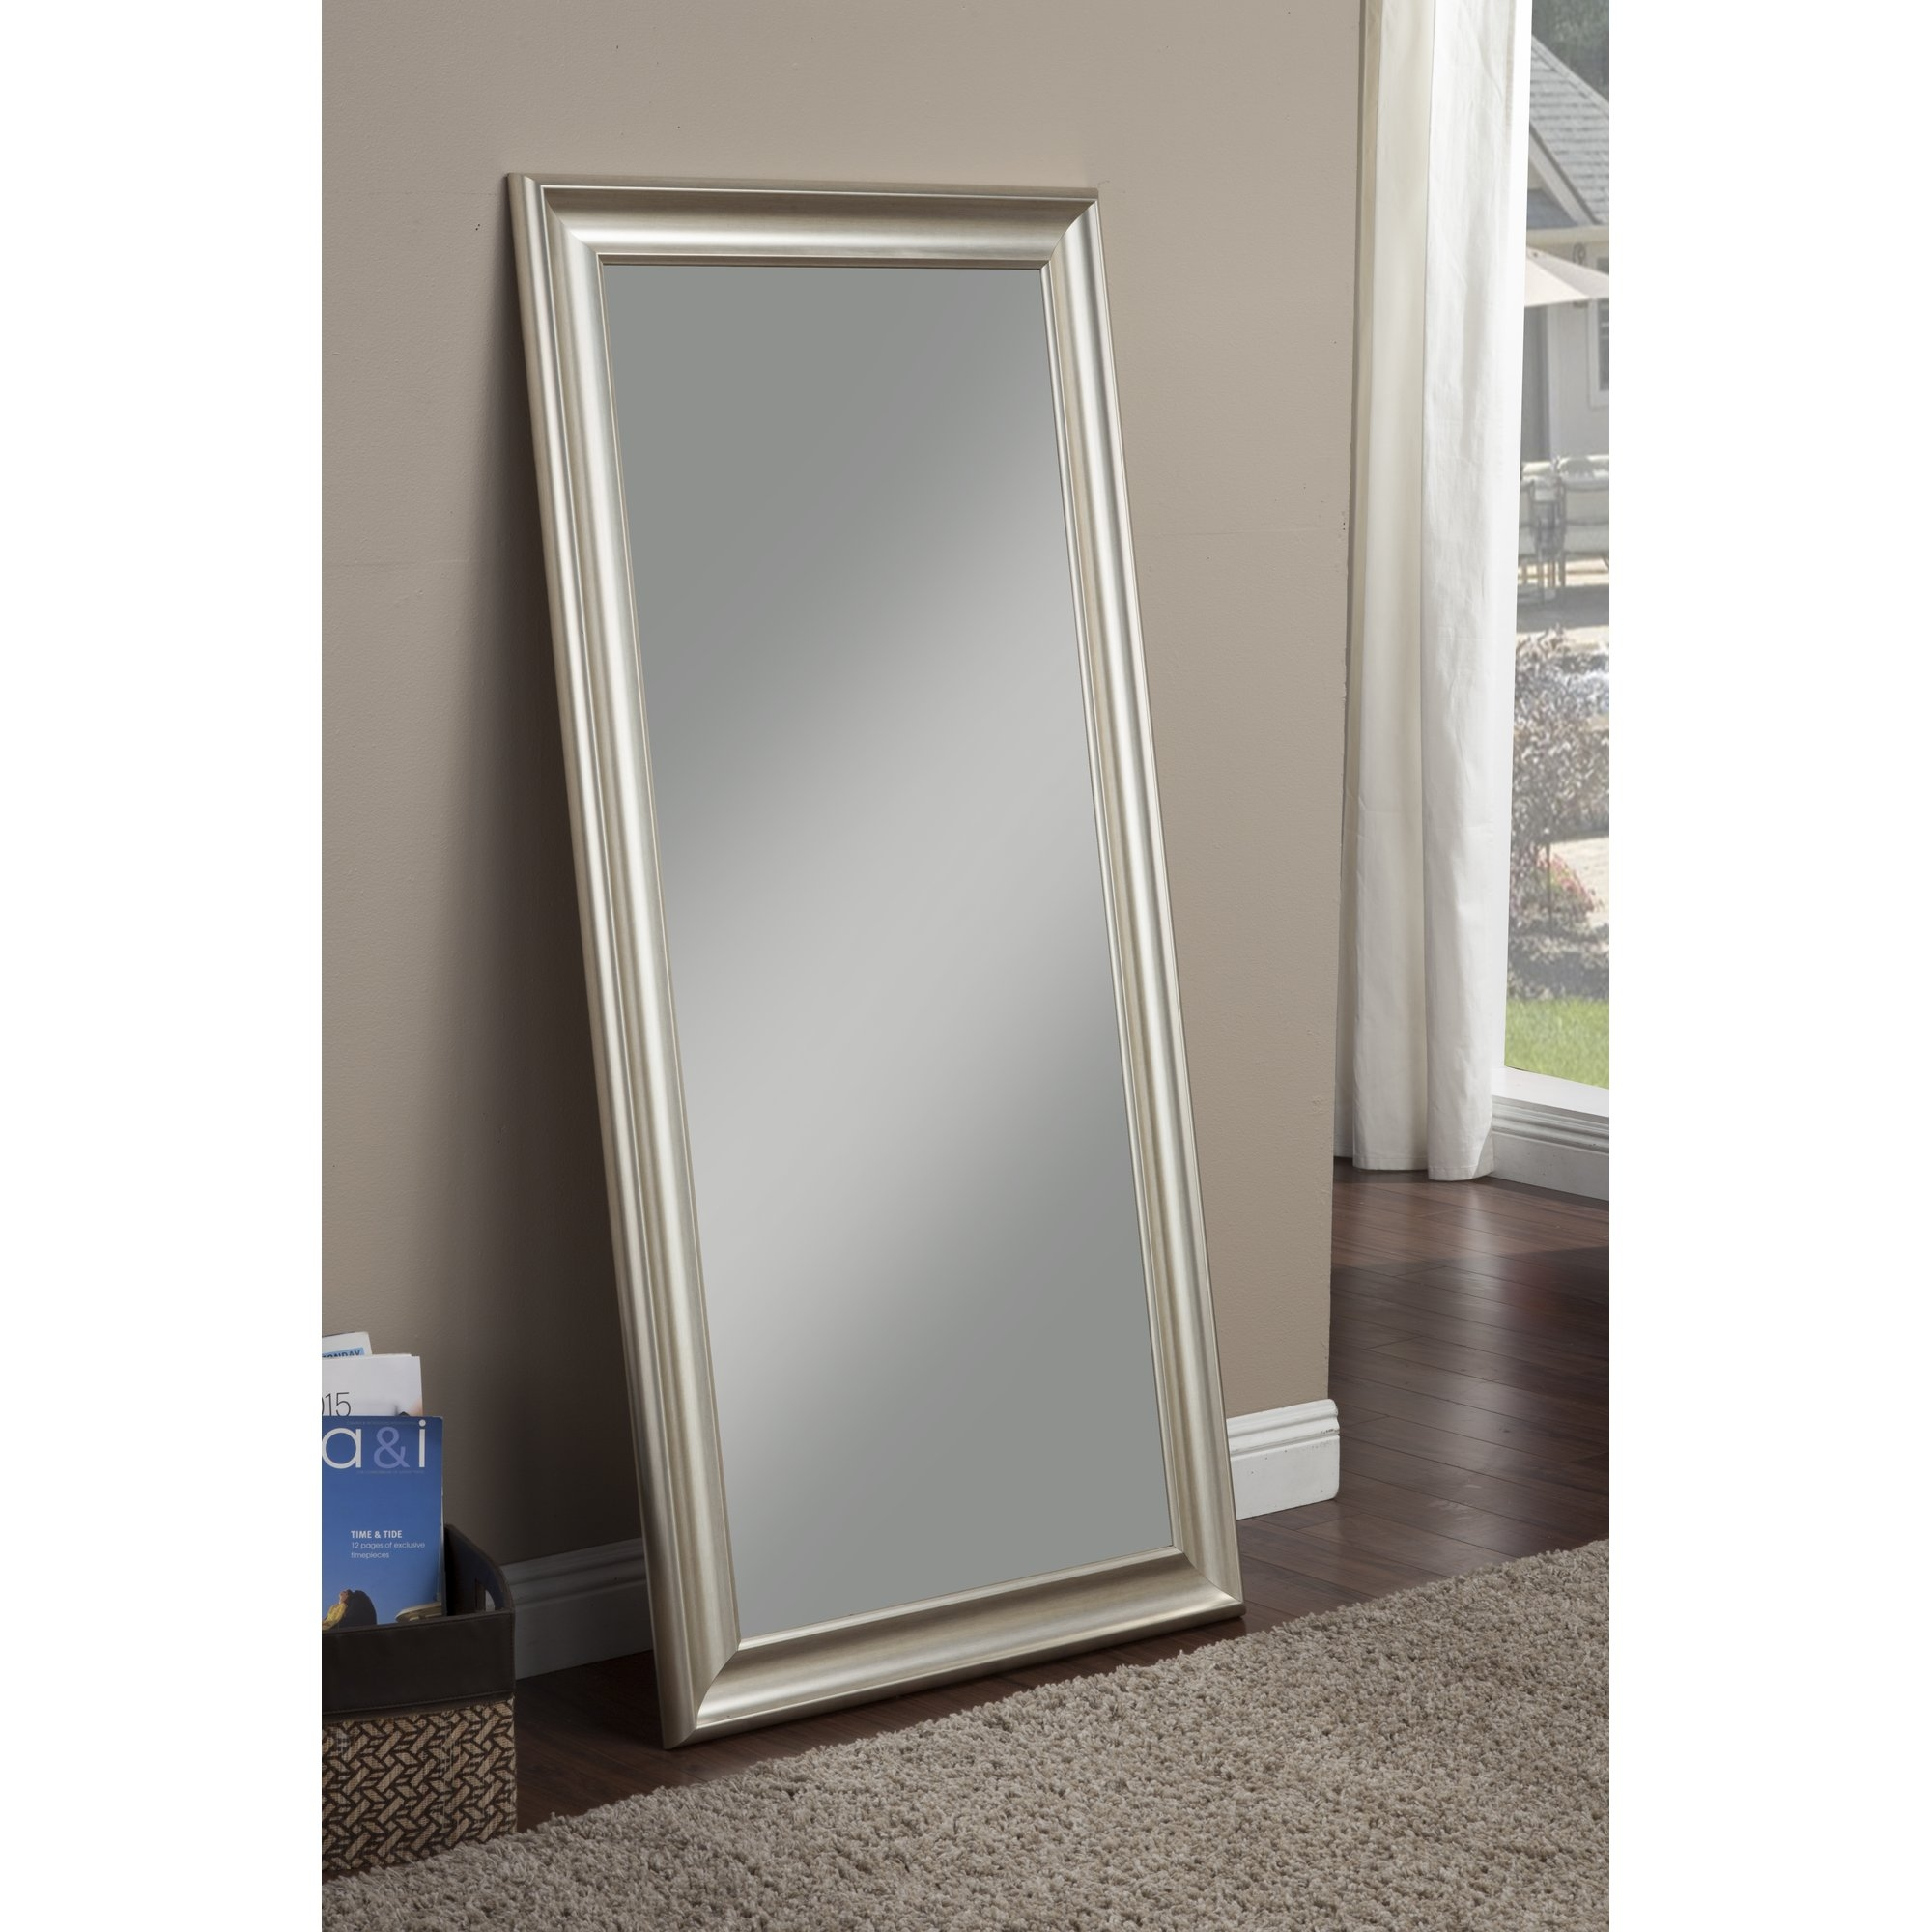 Full Length Mirrors Youll Love Wayfair With Regard To Full Length French Mirror (Image 11 of 15)